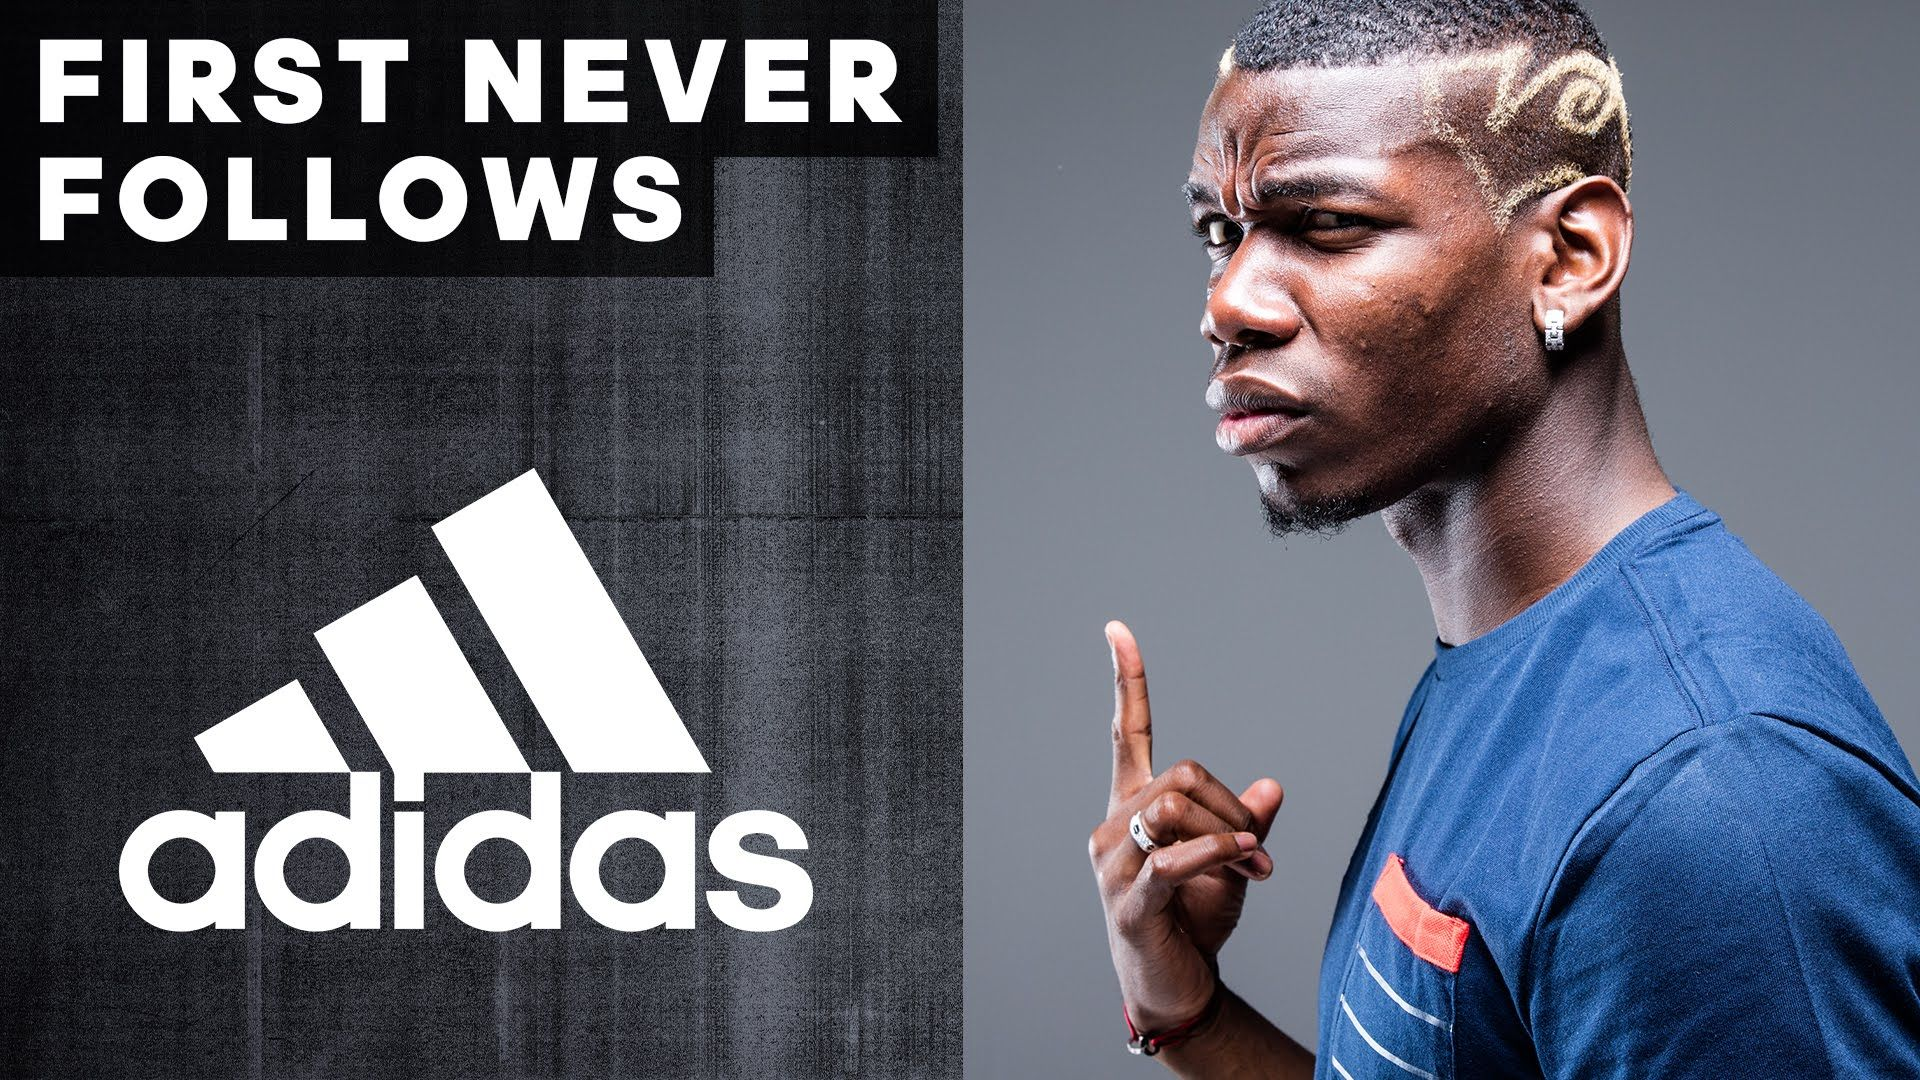 Awesome: Luis Suarez Paul Pogba and Mesut Ozil star in new adidas ad (Video)